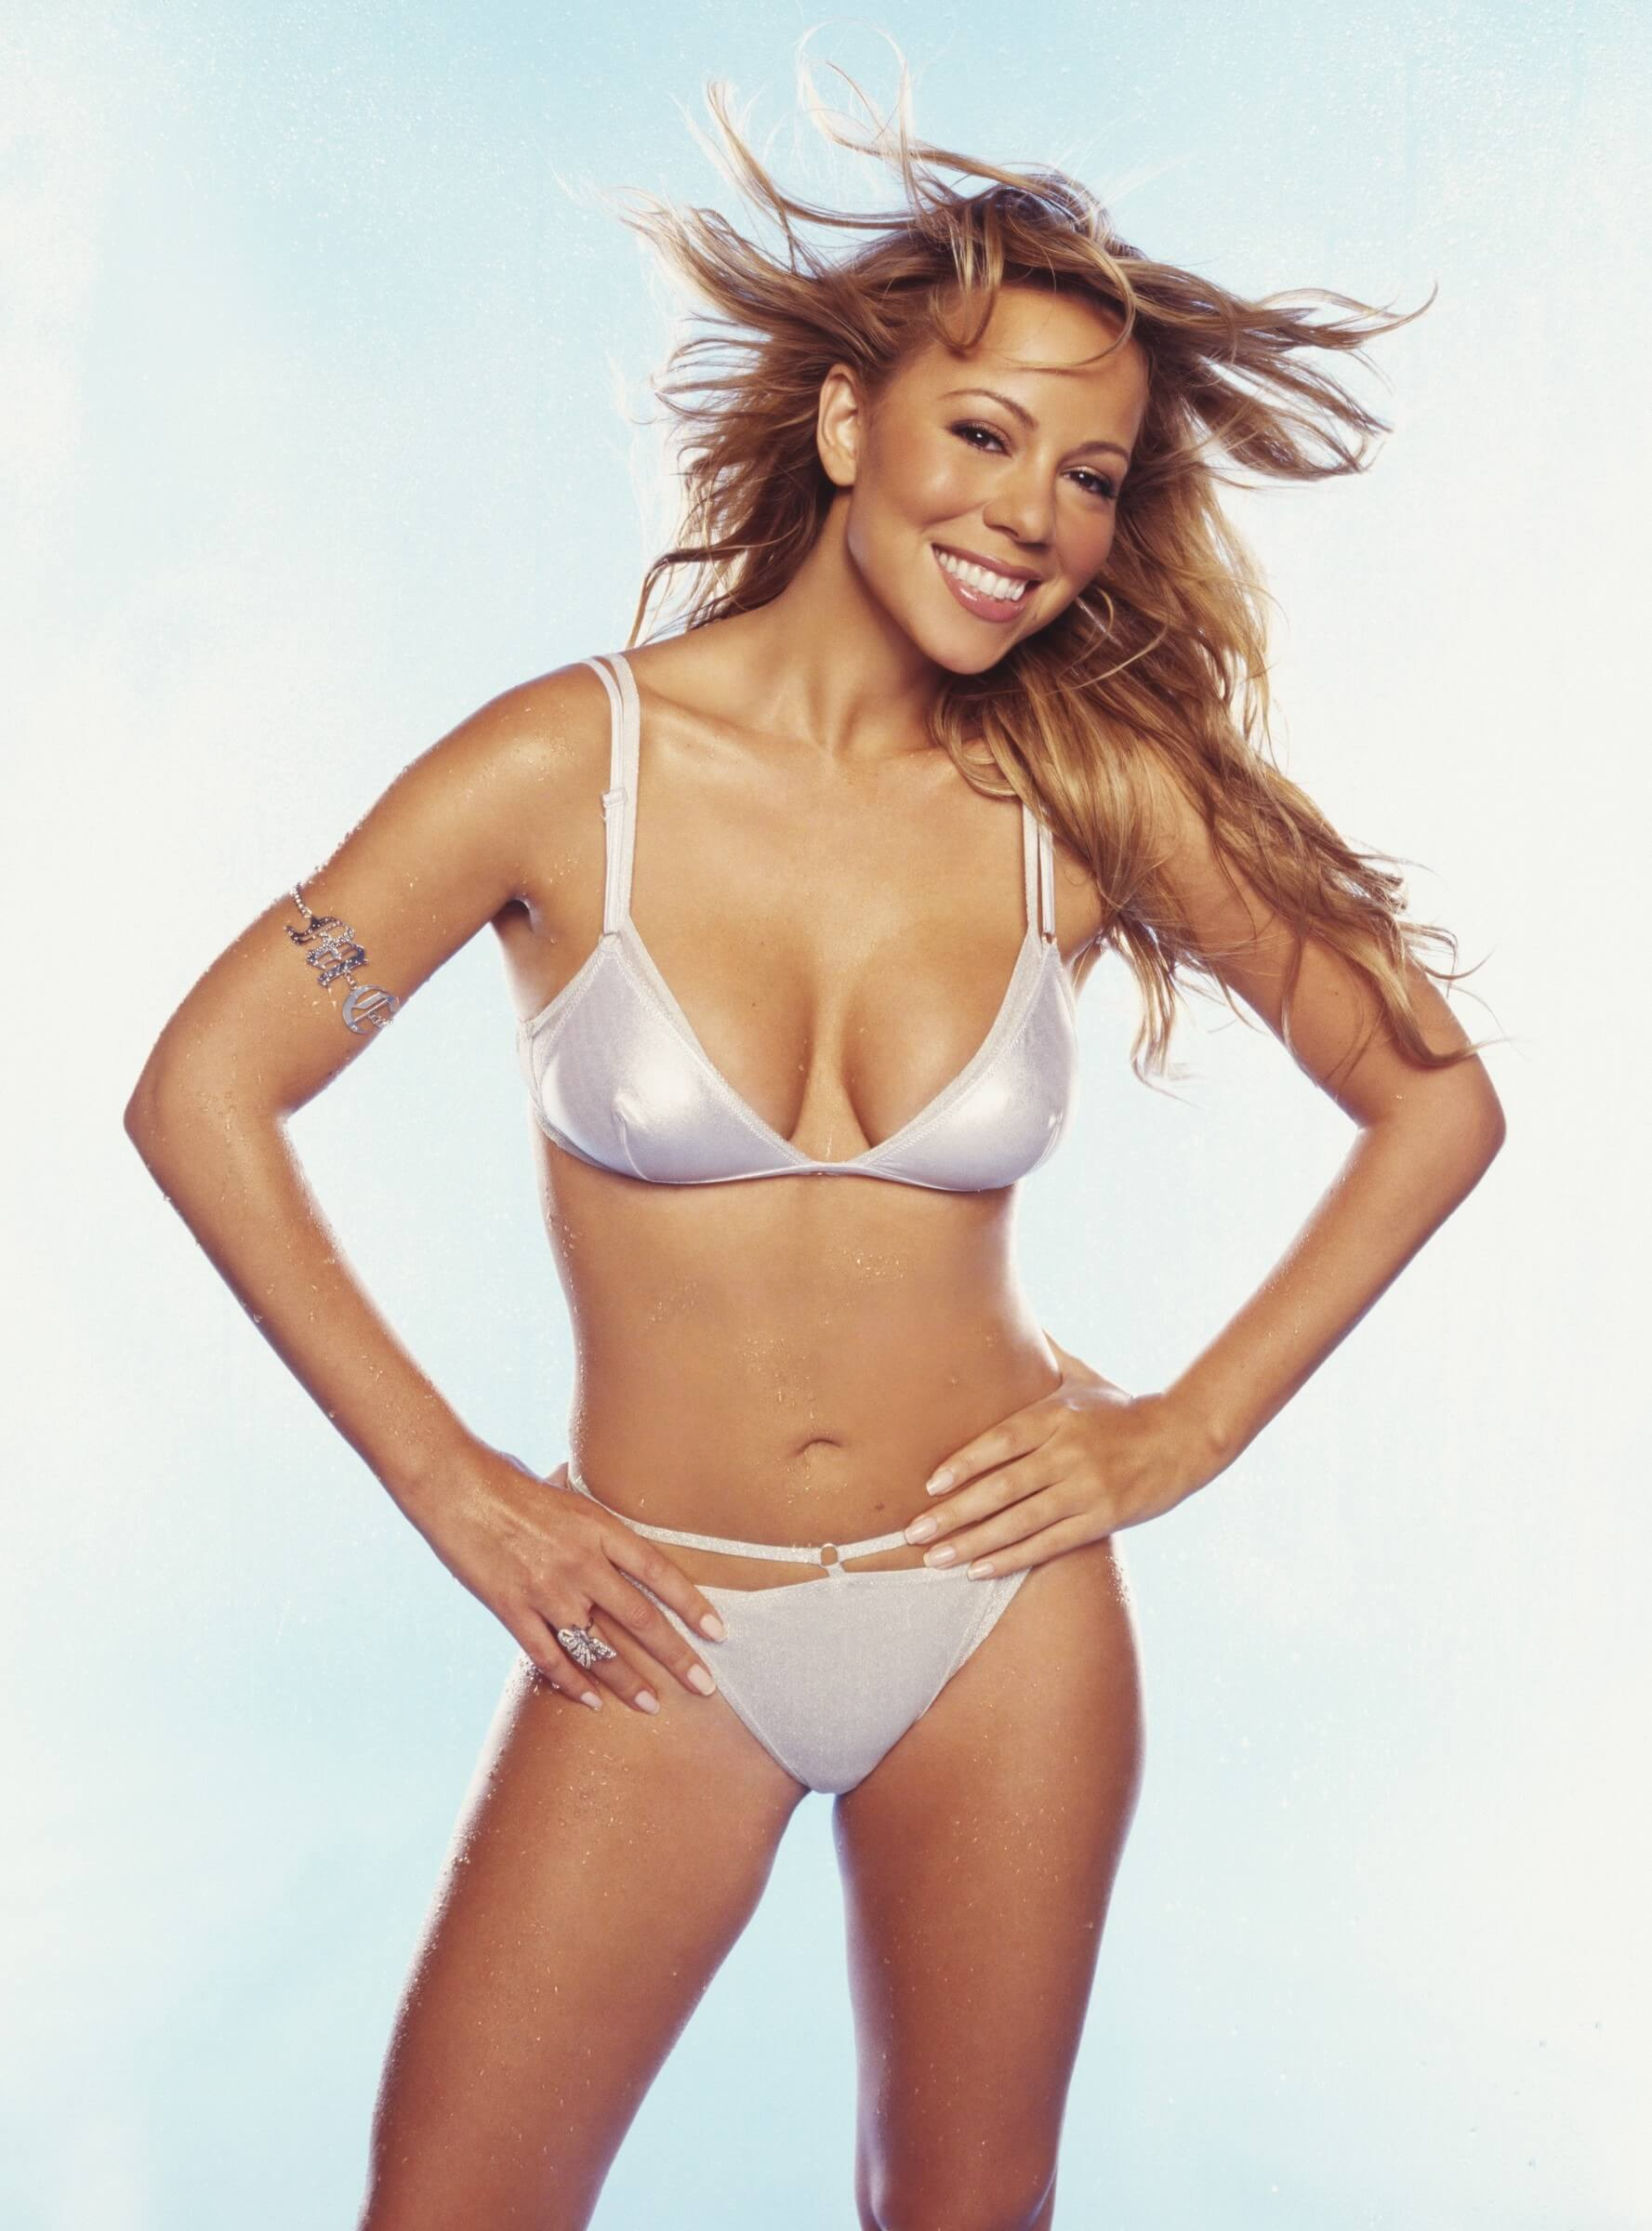 49 Hot Pictures Of Mariah Carey Are Going To Cheer You Up 49 ...